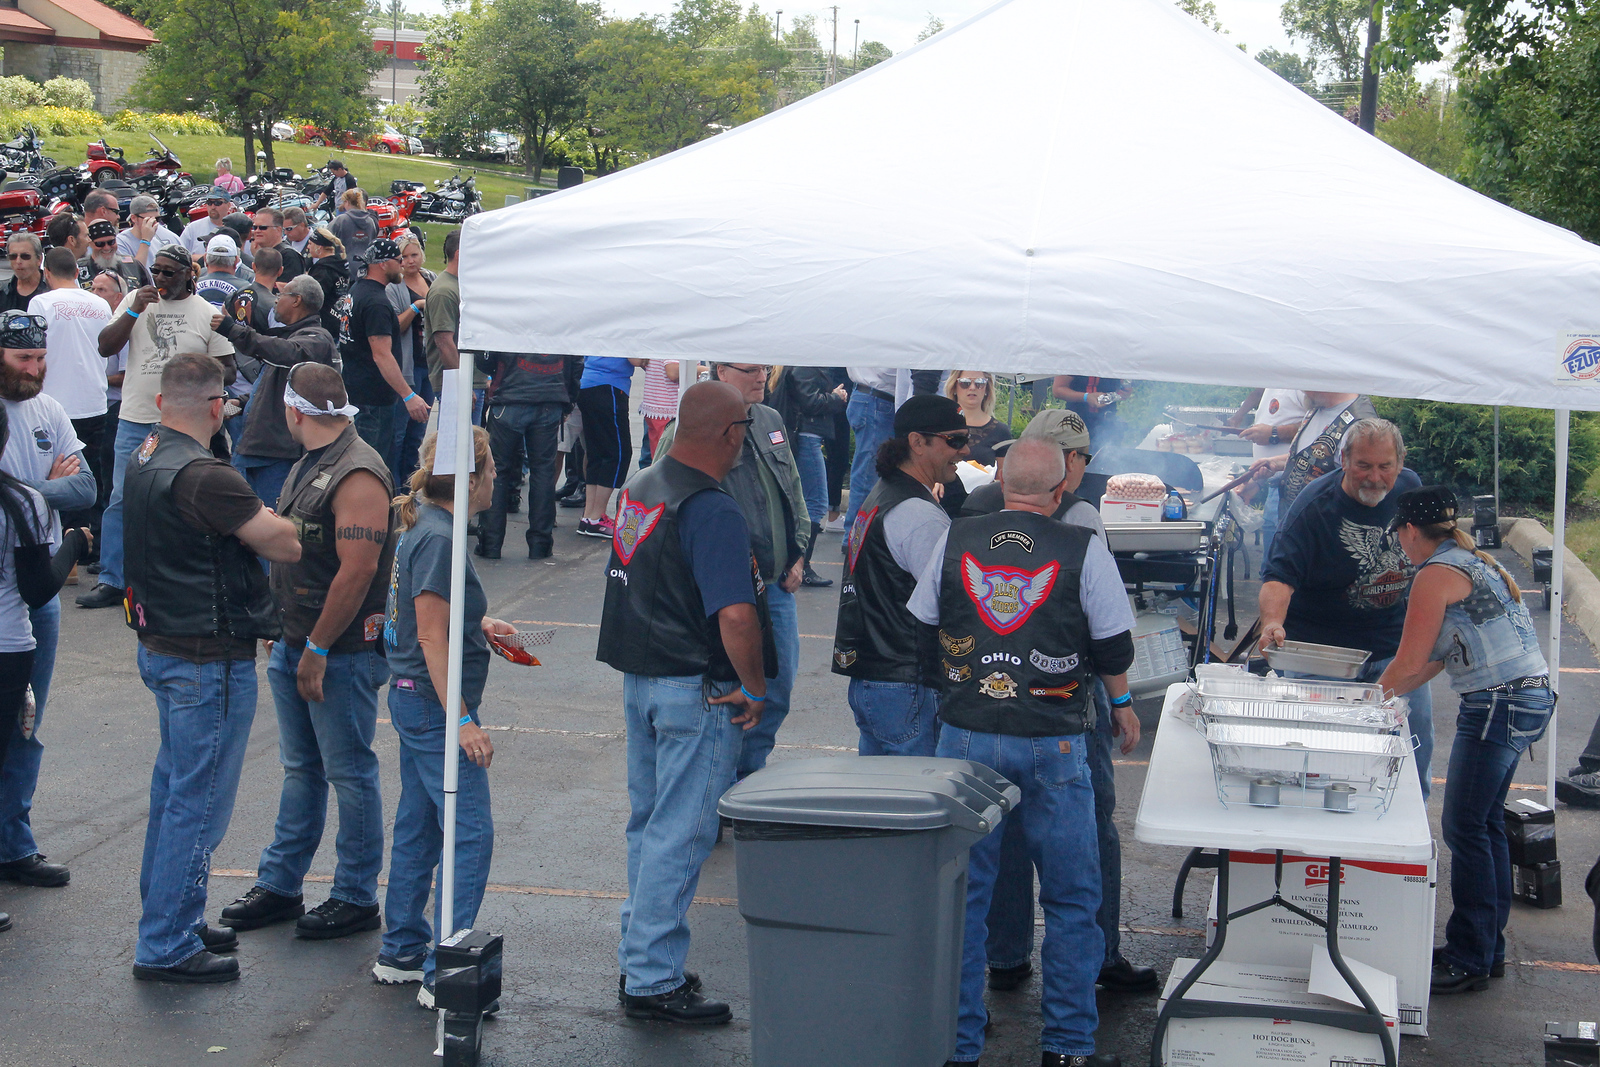 ALEC SMITH / GAZETTE Hundreds of motorcyclists participate Sunday in an event called Cops Ride, in which riders traveled about 54 miles through Cuyahoga, Lorain and Medina counties. The event ended at Stinger Harley-Davidson in Medina Township. At right, serving food after the ride are Tony Puchowicz from Elyria and Bobbi Havrilla from Wadsworth.